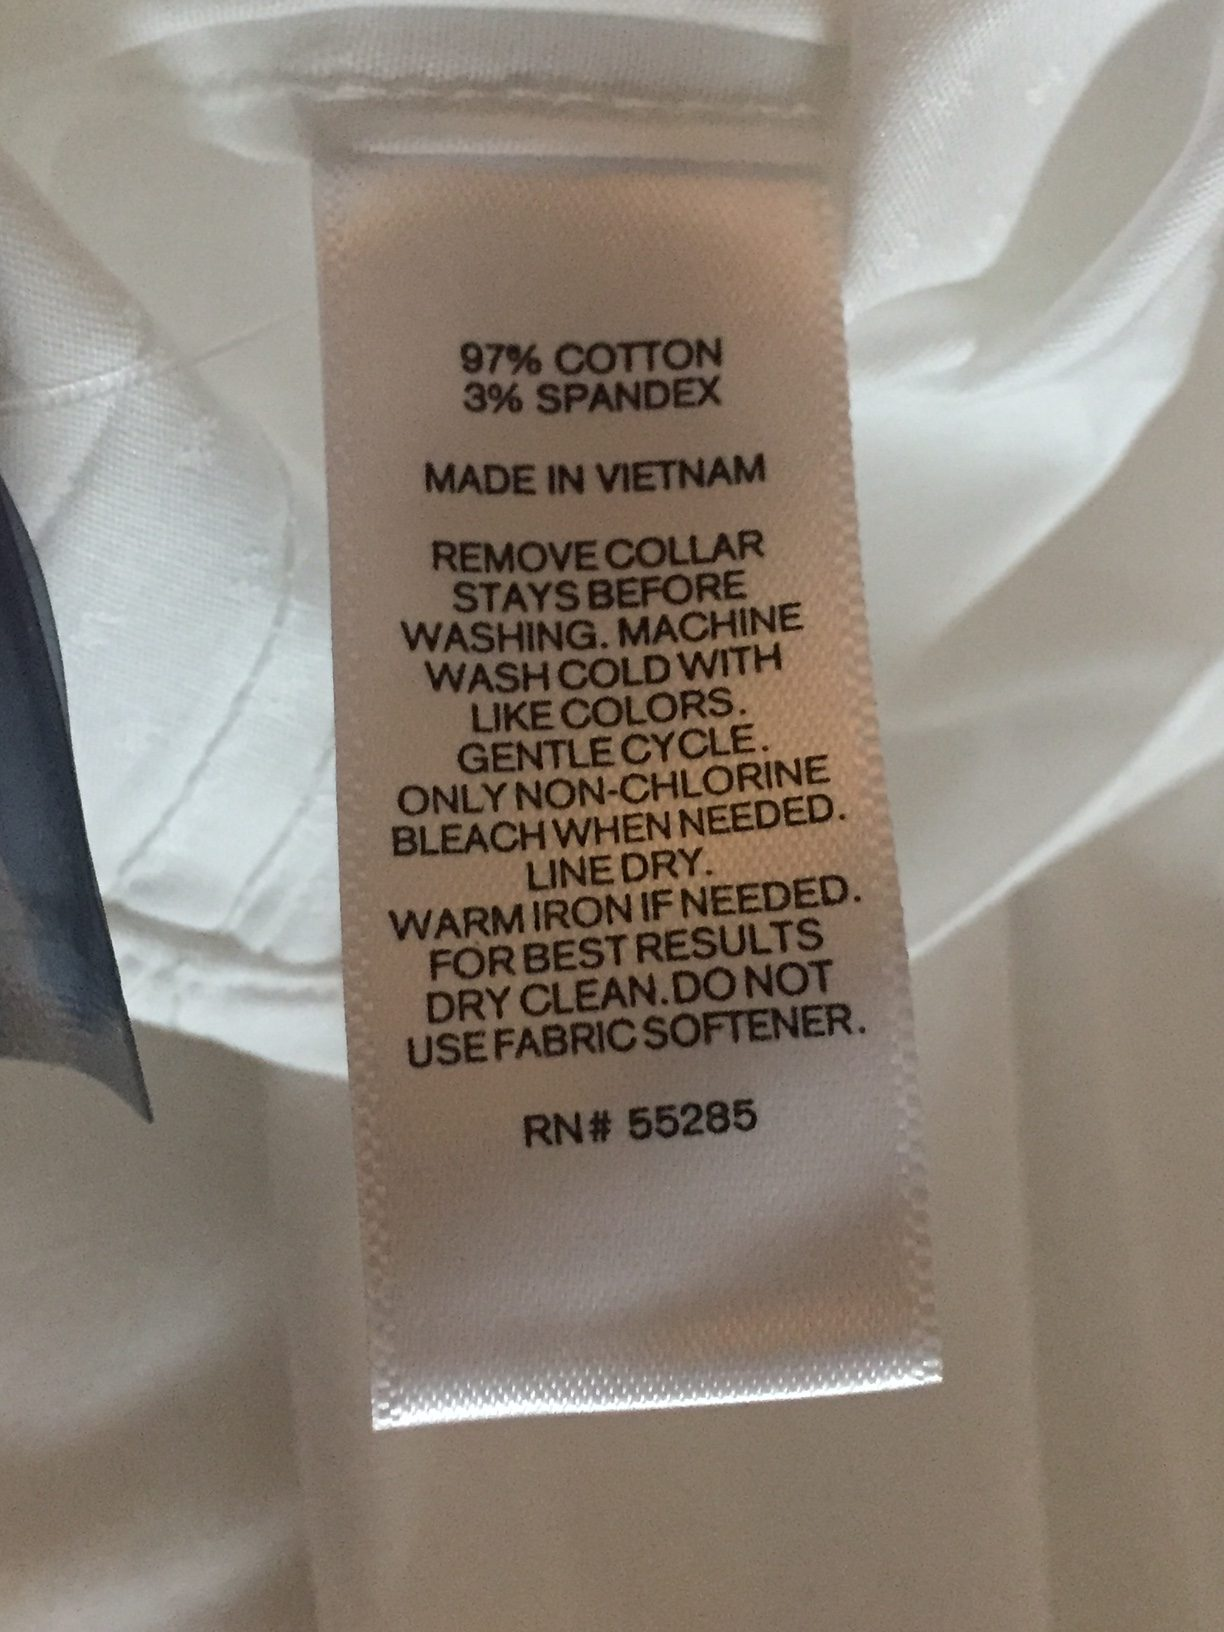 This image is part of the Express size chart and shows an Express tag, with the shirt made in Vietnam.